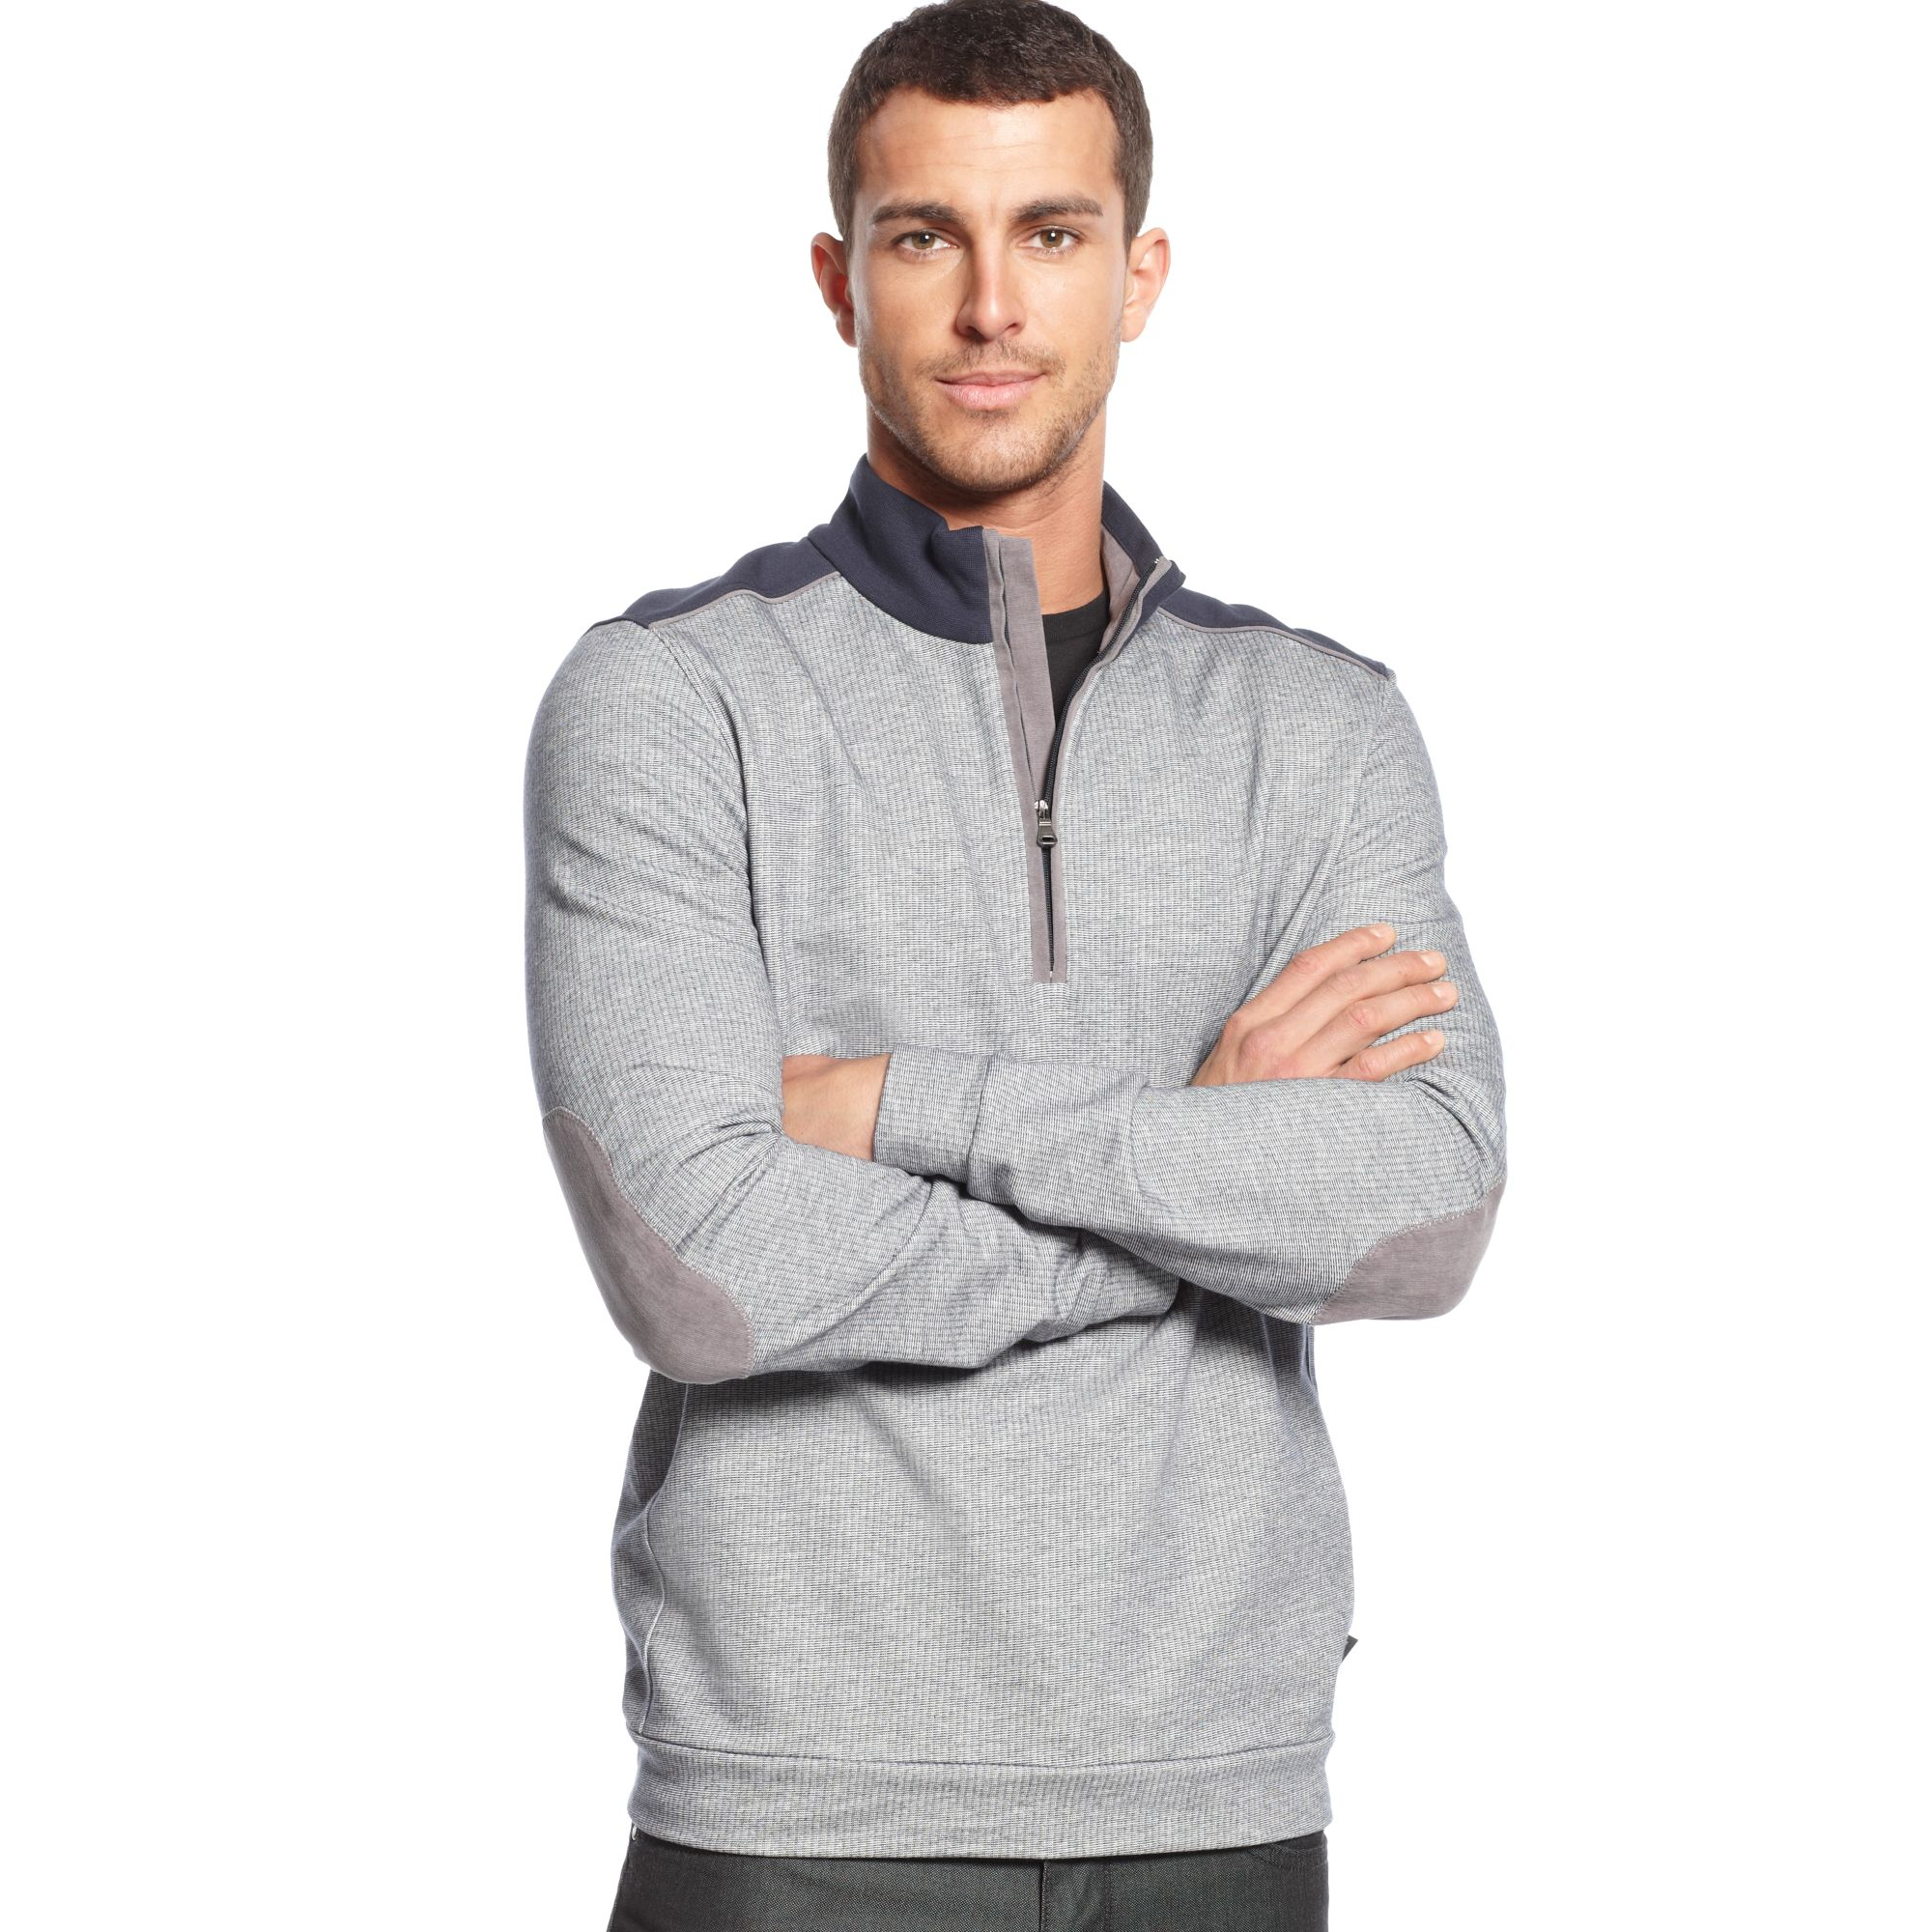 hugo boss boss quarter zip pullover sweater in gray for men light. Black Bedroom Furniture Sets. Home Design Ideas